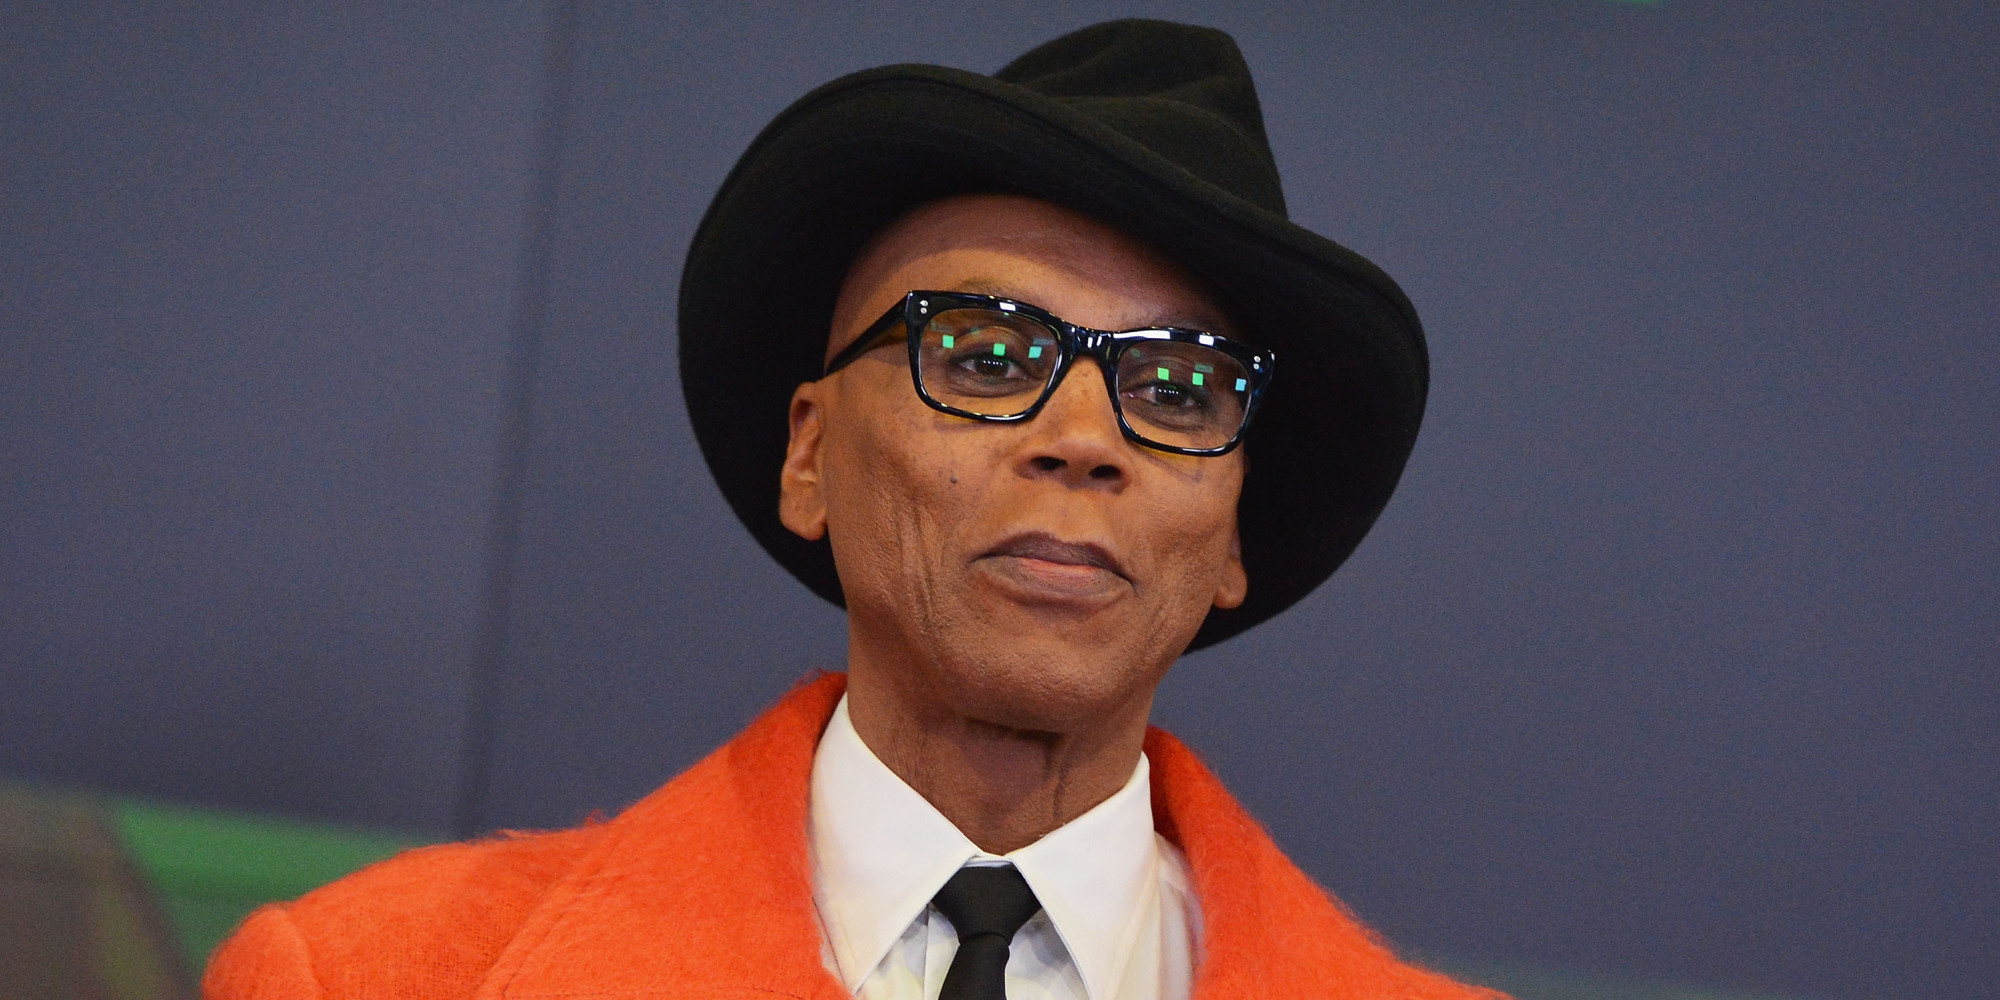 RuPaul Got Hopped Up on Coffee While Filming 'All Stars 4' and Flipped His Wig